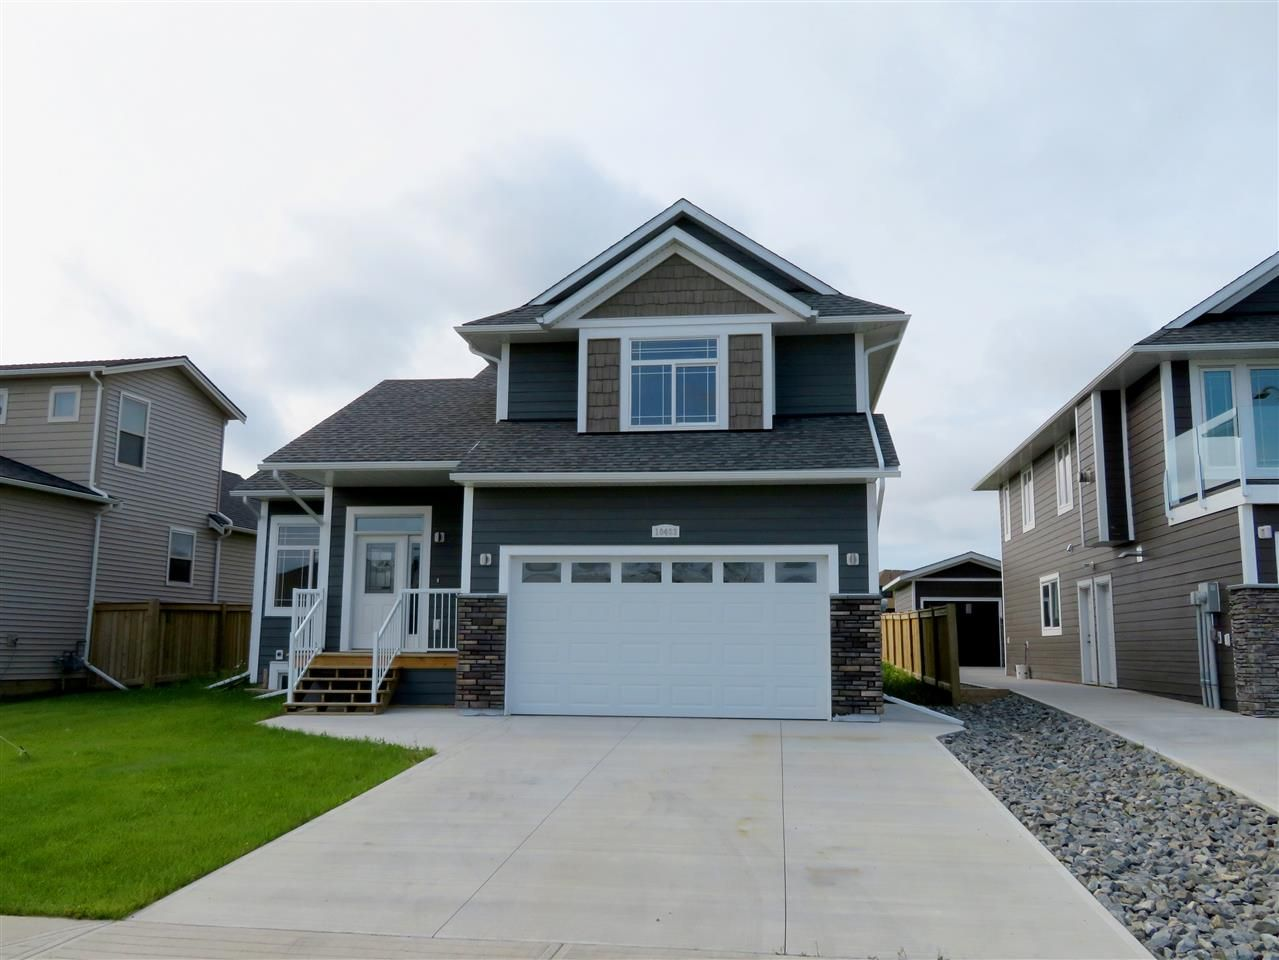 Main Photo: 10403 117 AVENUE in : Fort St. John - City NW House for sale : MLS®# R2289060